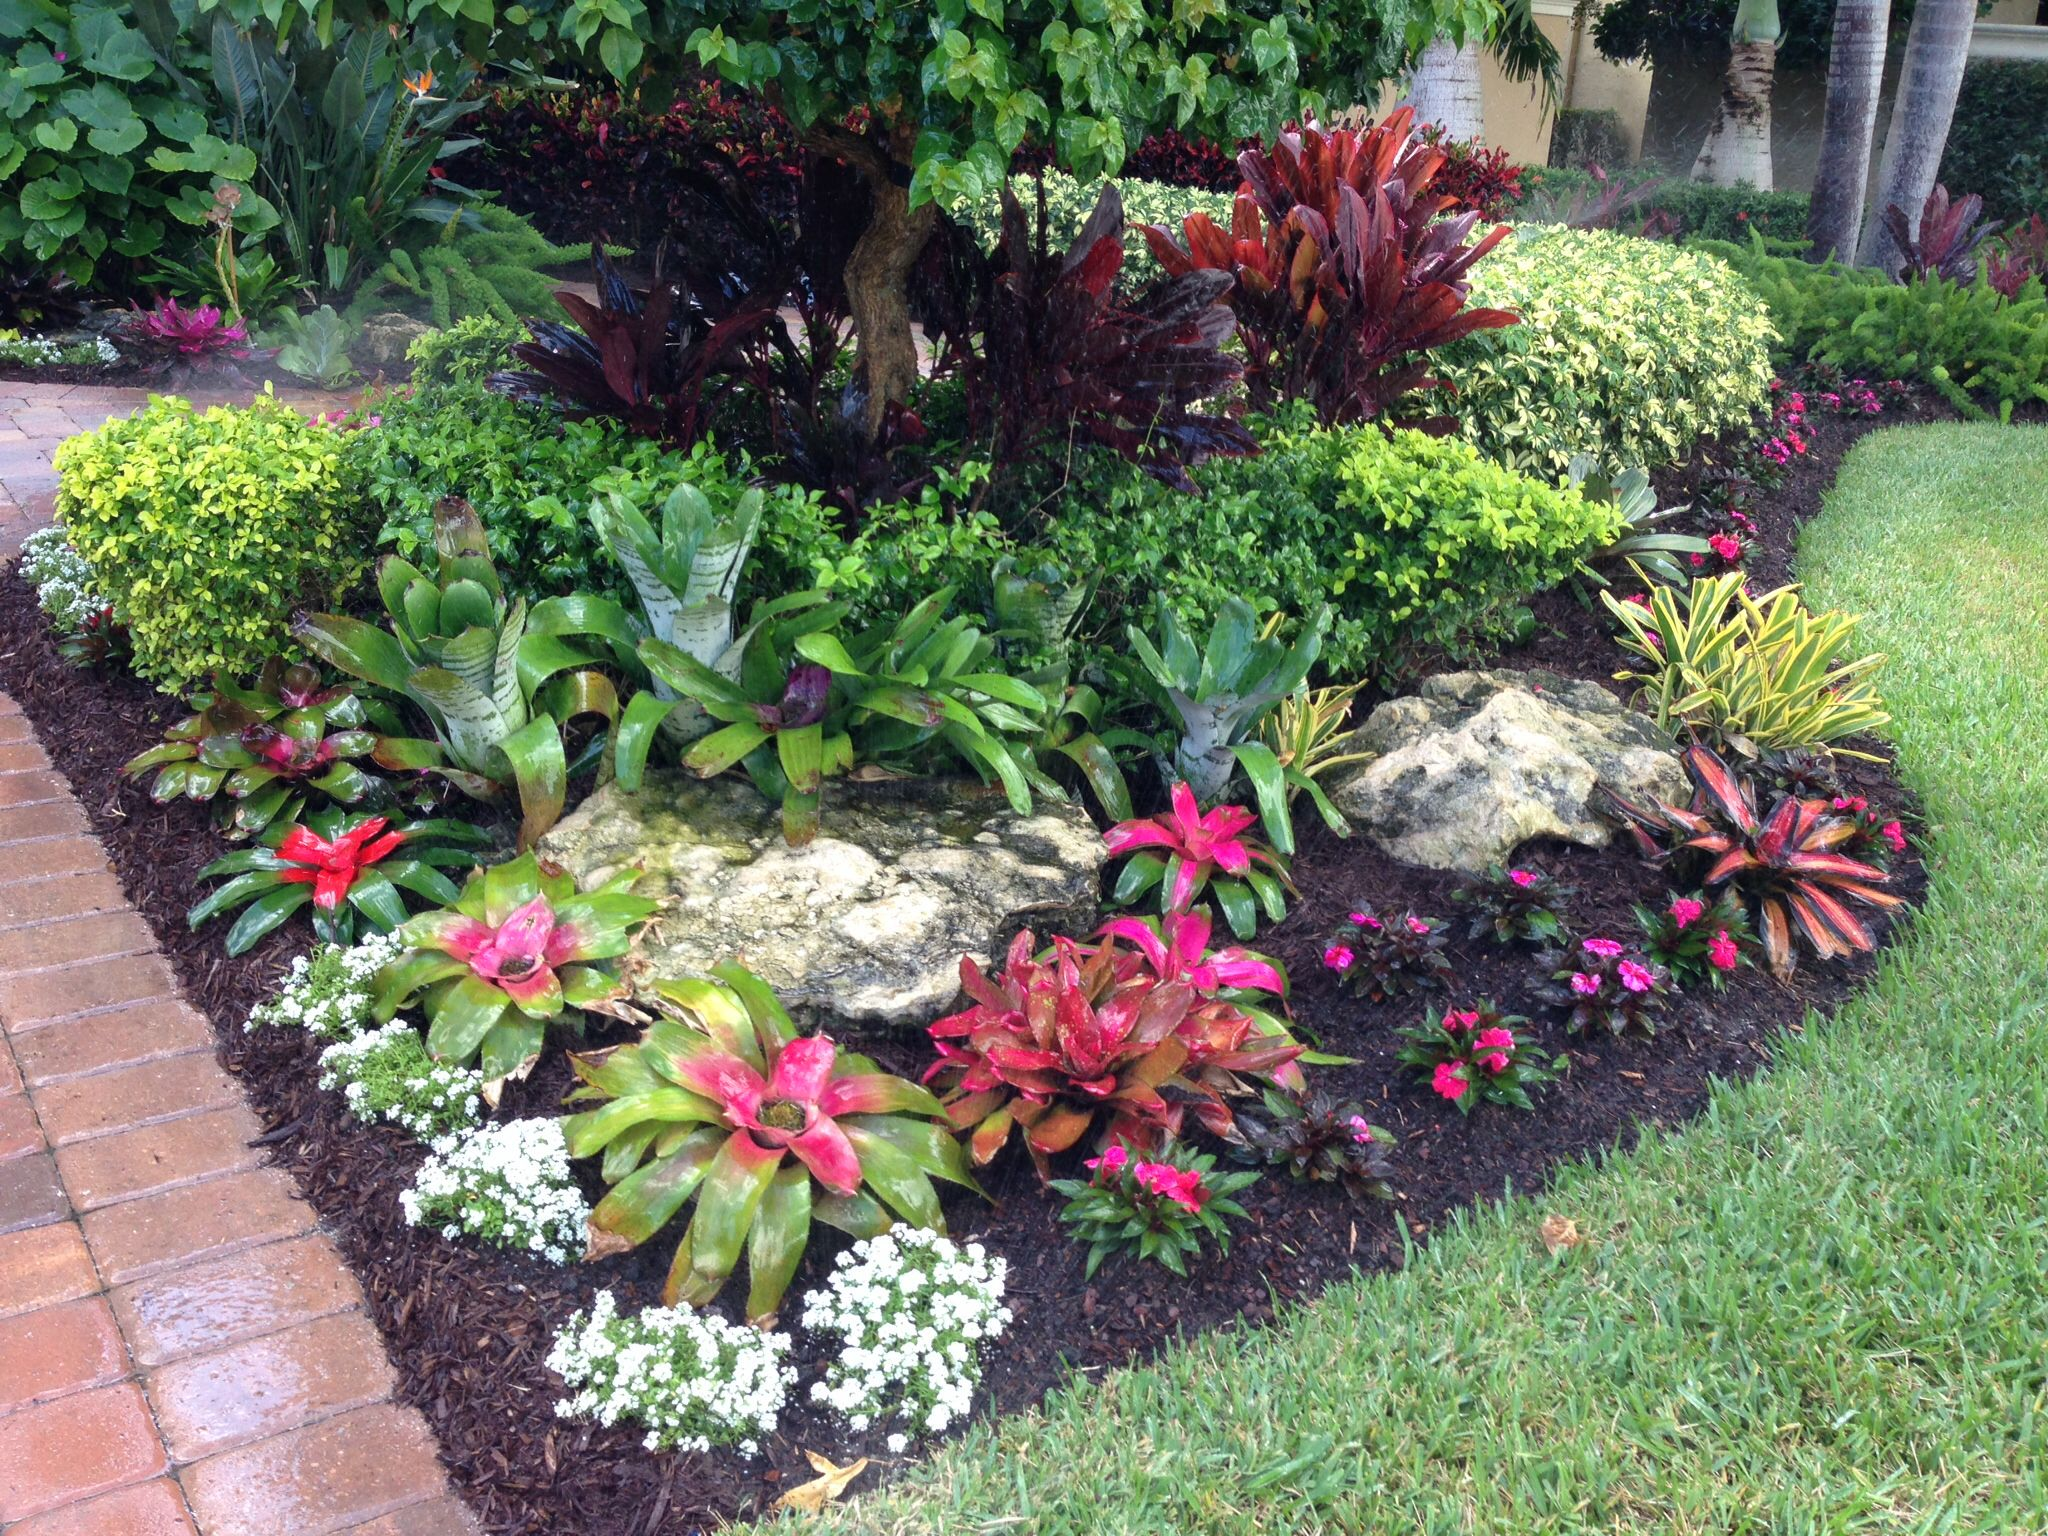 Tropical bromeliad garden design my landscape designs for Florida backyard landscaping ideas